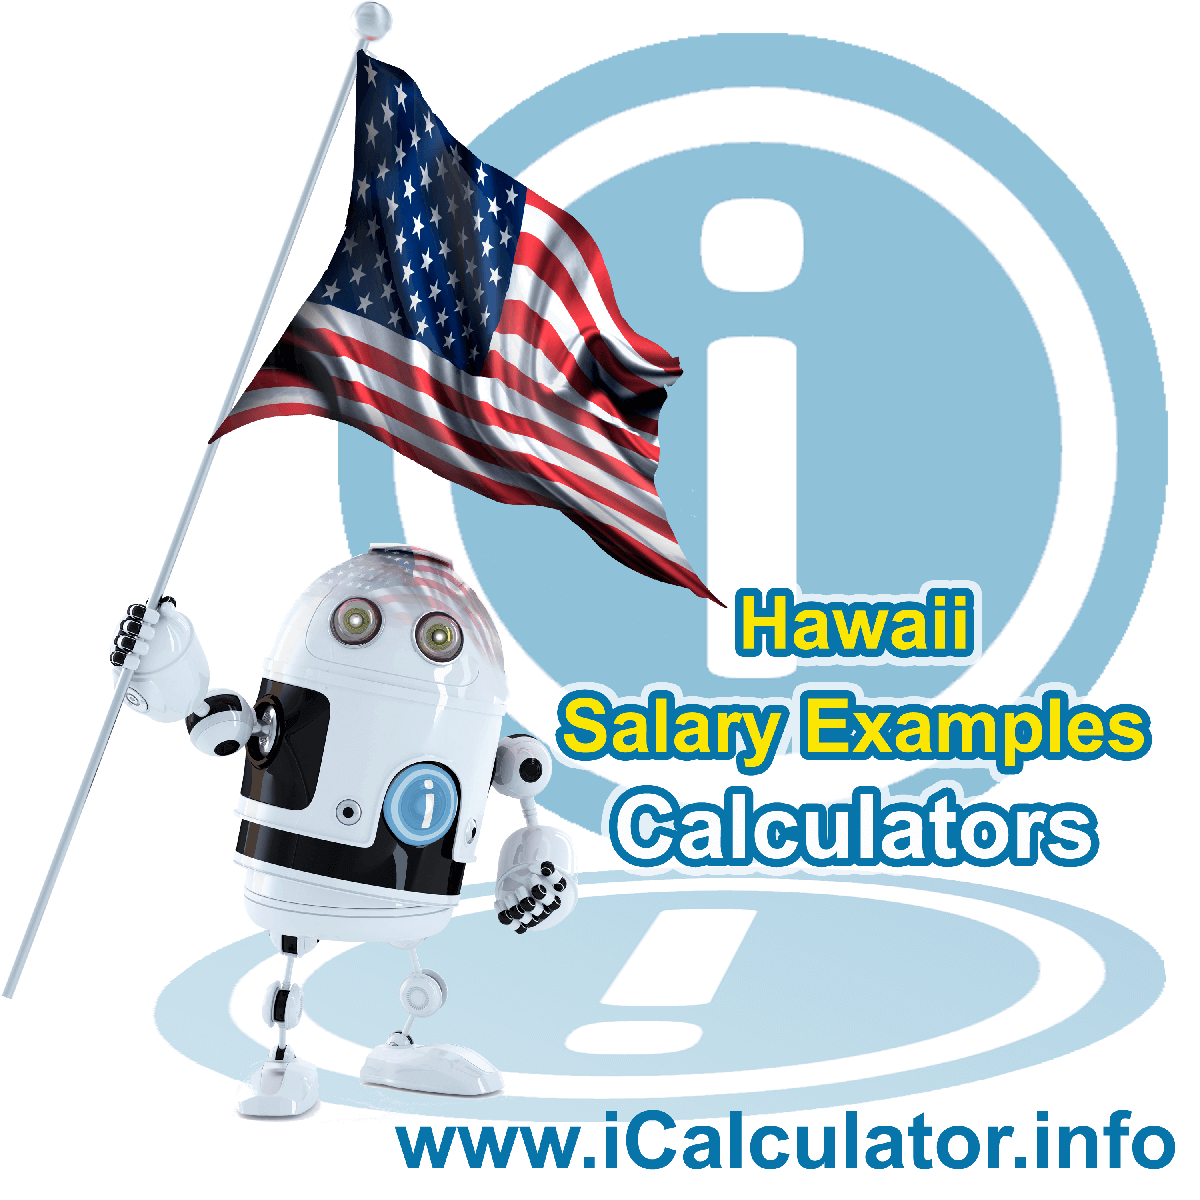 Hawaii Salary Example for $10.00 in 2020 | iCalculator | $10.00 salary example for employee and employer paying Hawaii State tincome taxes. Detailed salary after tax calculation including Hawaii State Tax, Federal State Tax, Medicare Deductions, Social Security, Capital Gains and other income tax and salary deductions complete with supporting Hawaii state tax tables